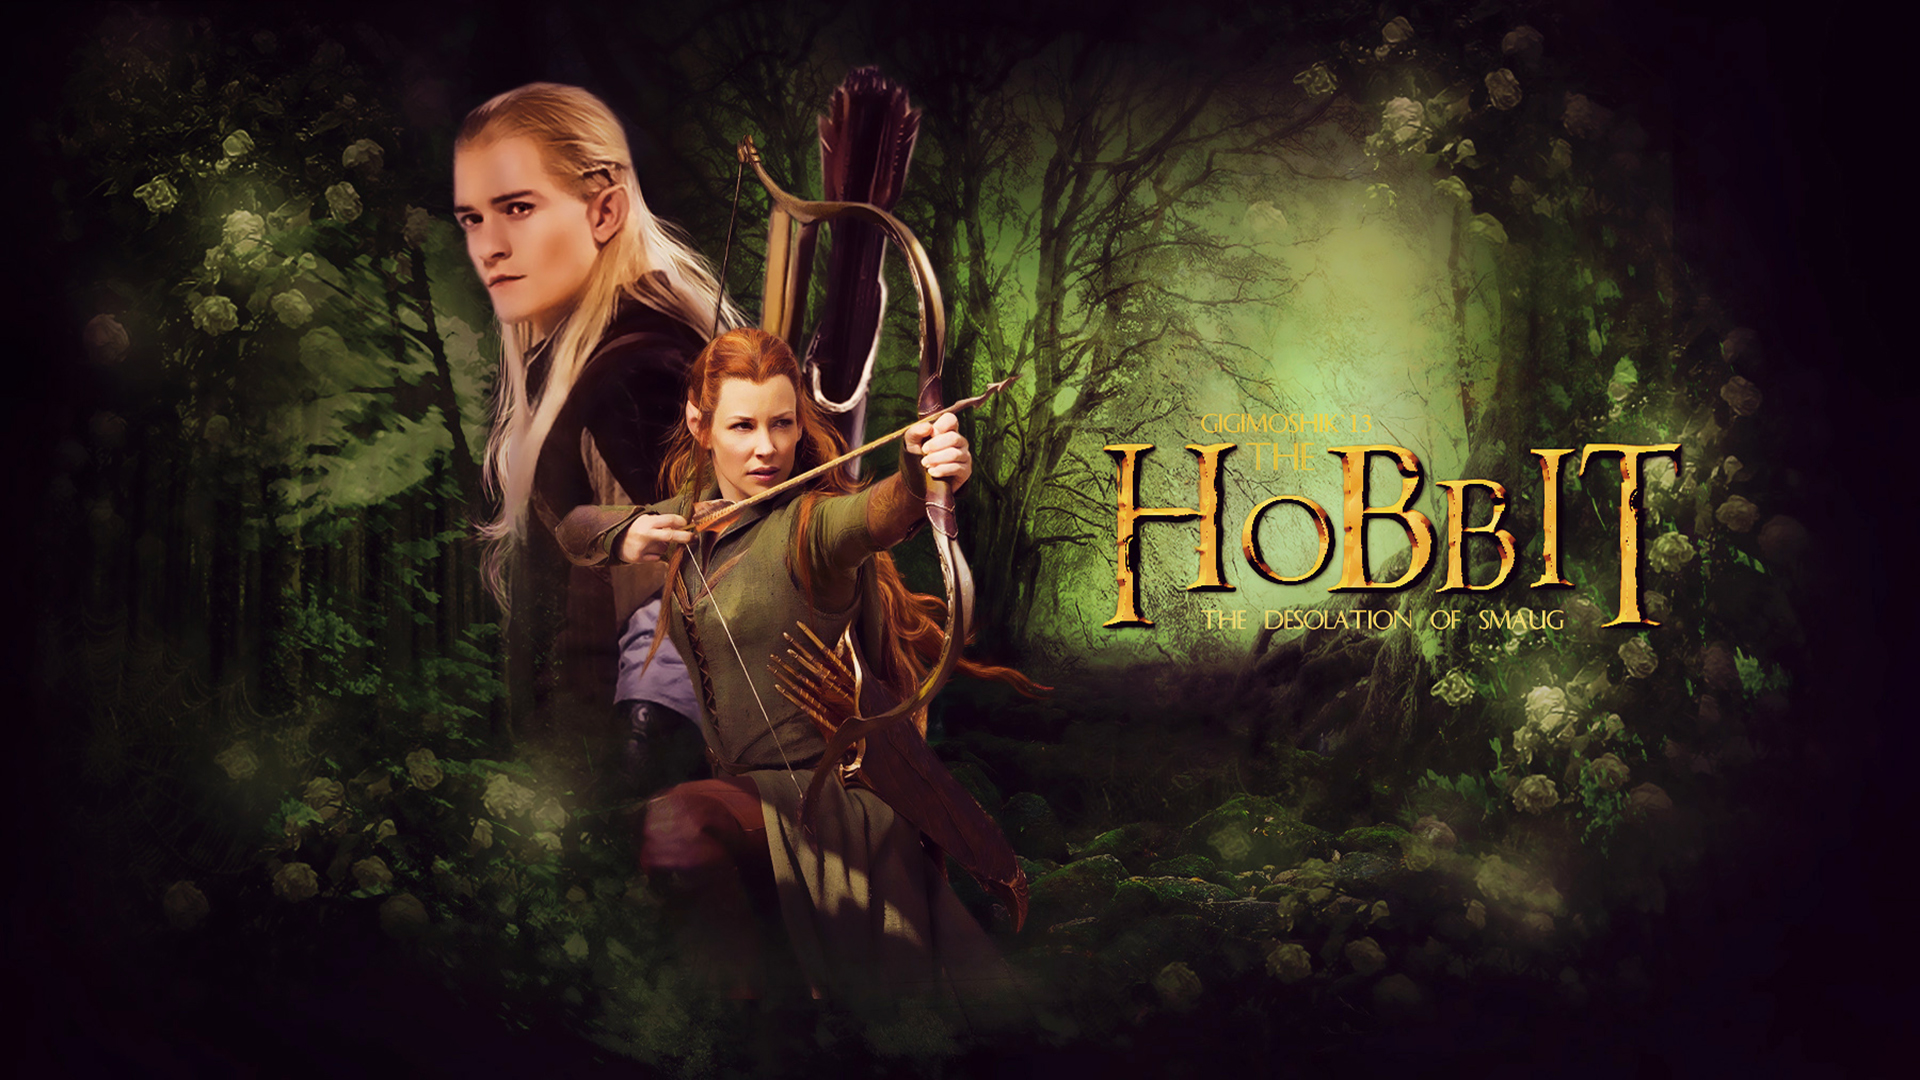 The Hobbit The Desolation of Smaug HD   Wallpaper High Definition 1920x1080